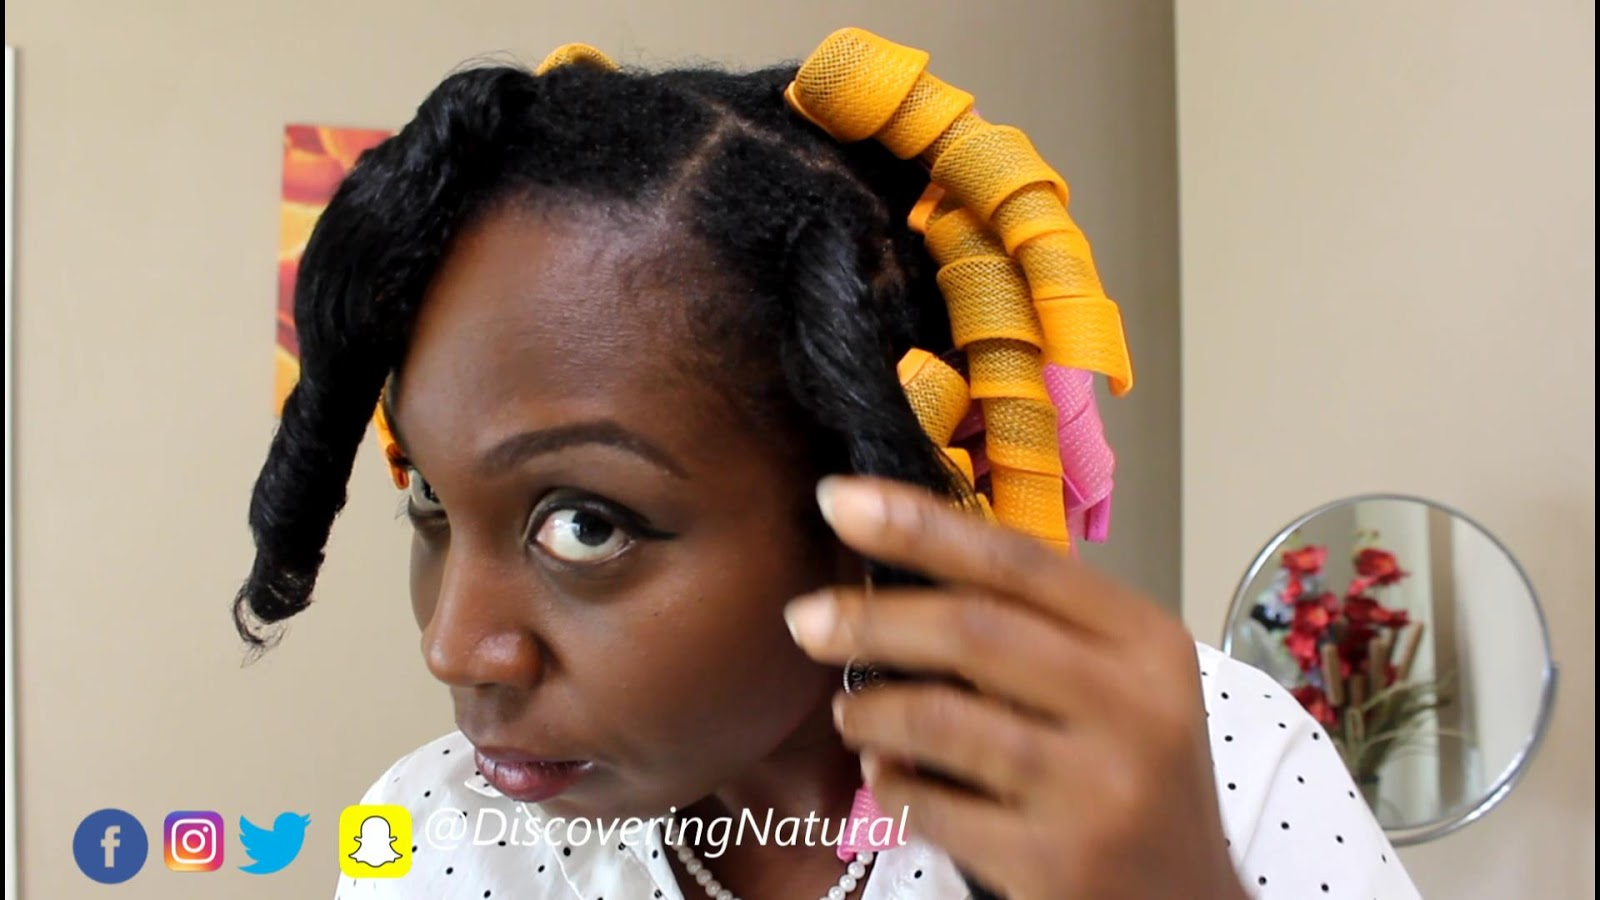 DiscoveringNatural NO HEAT CURLS Using CURLFORMERS On NATURAL HAIR